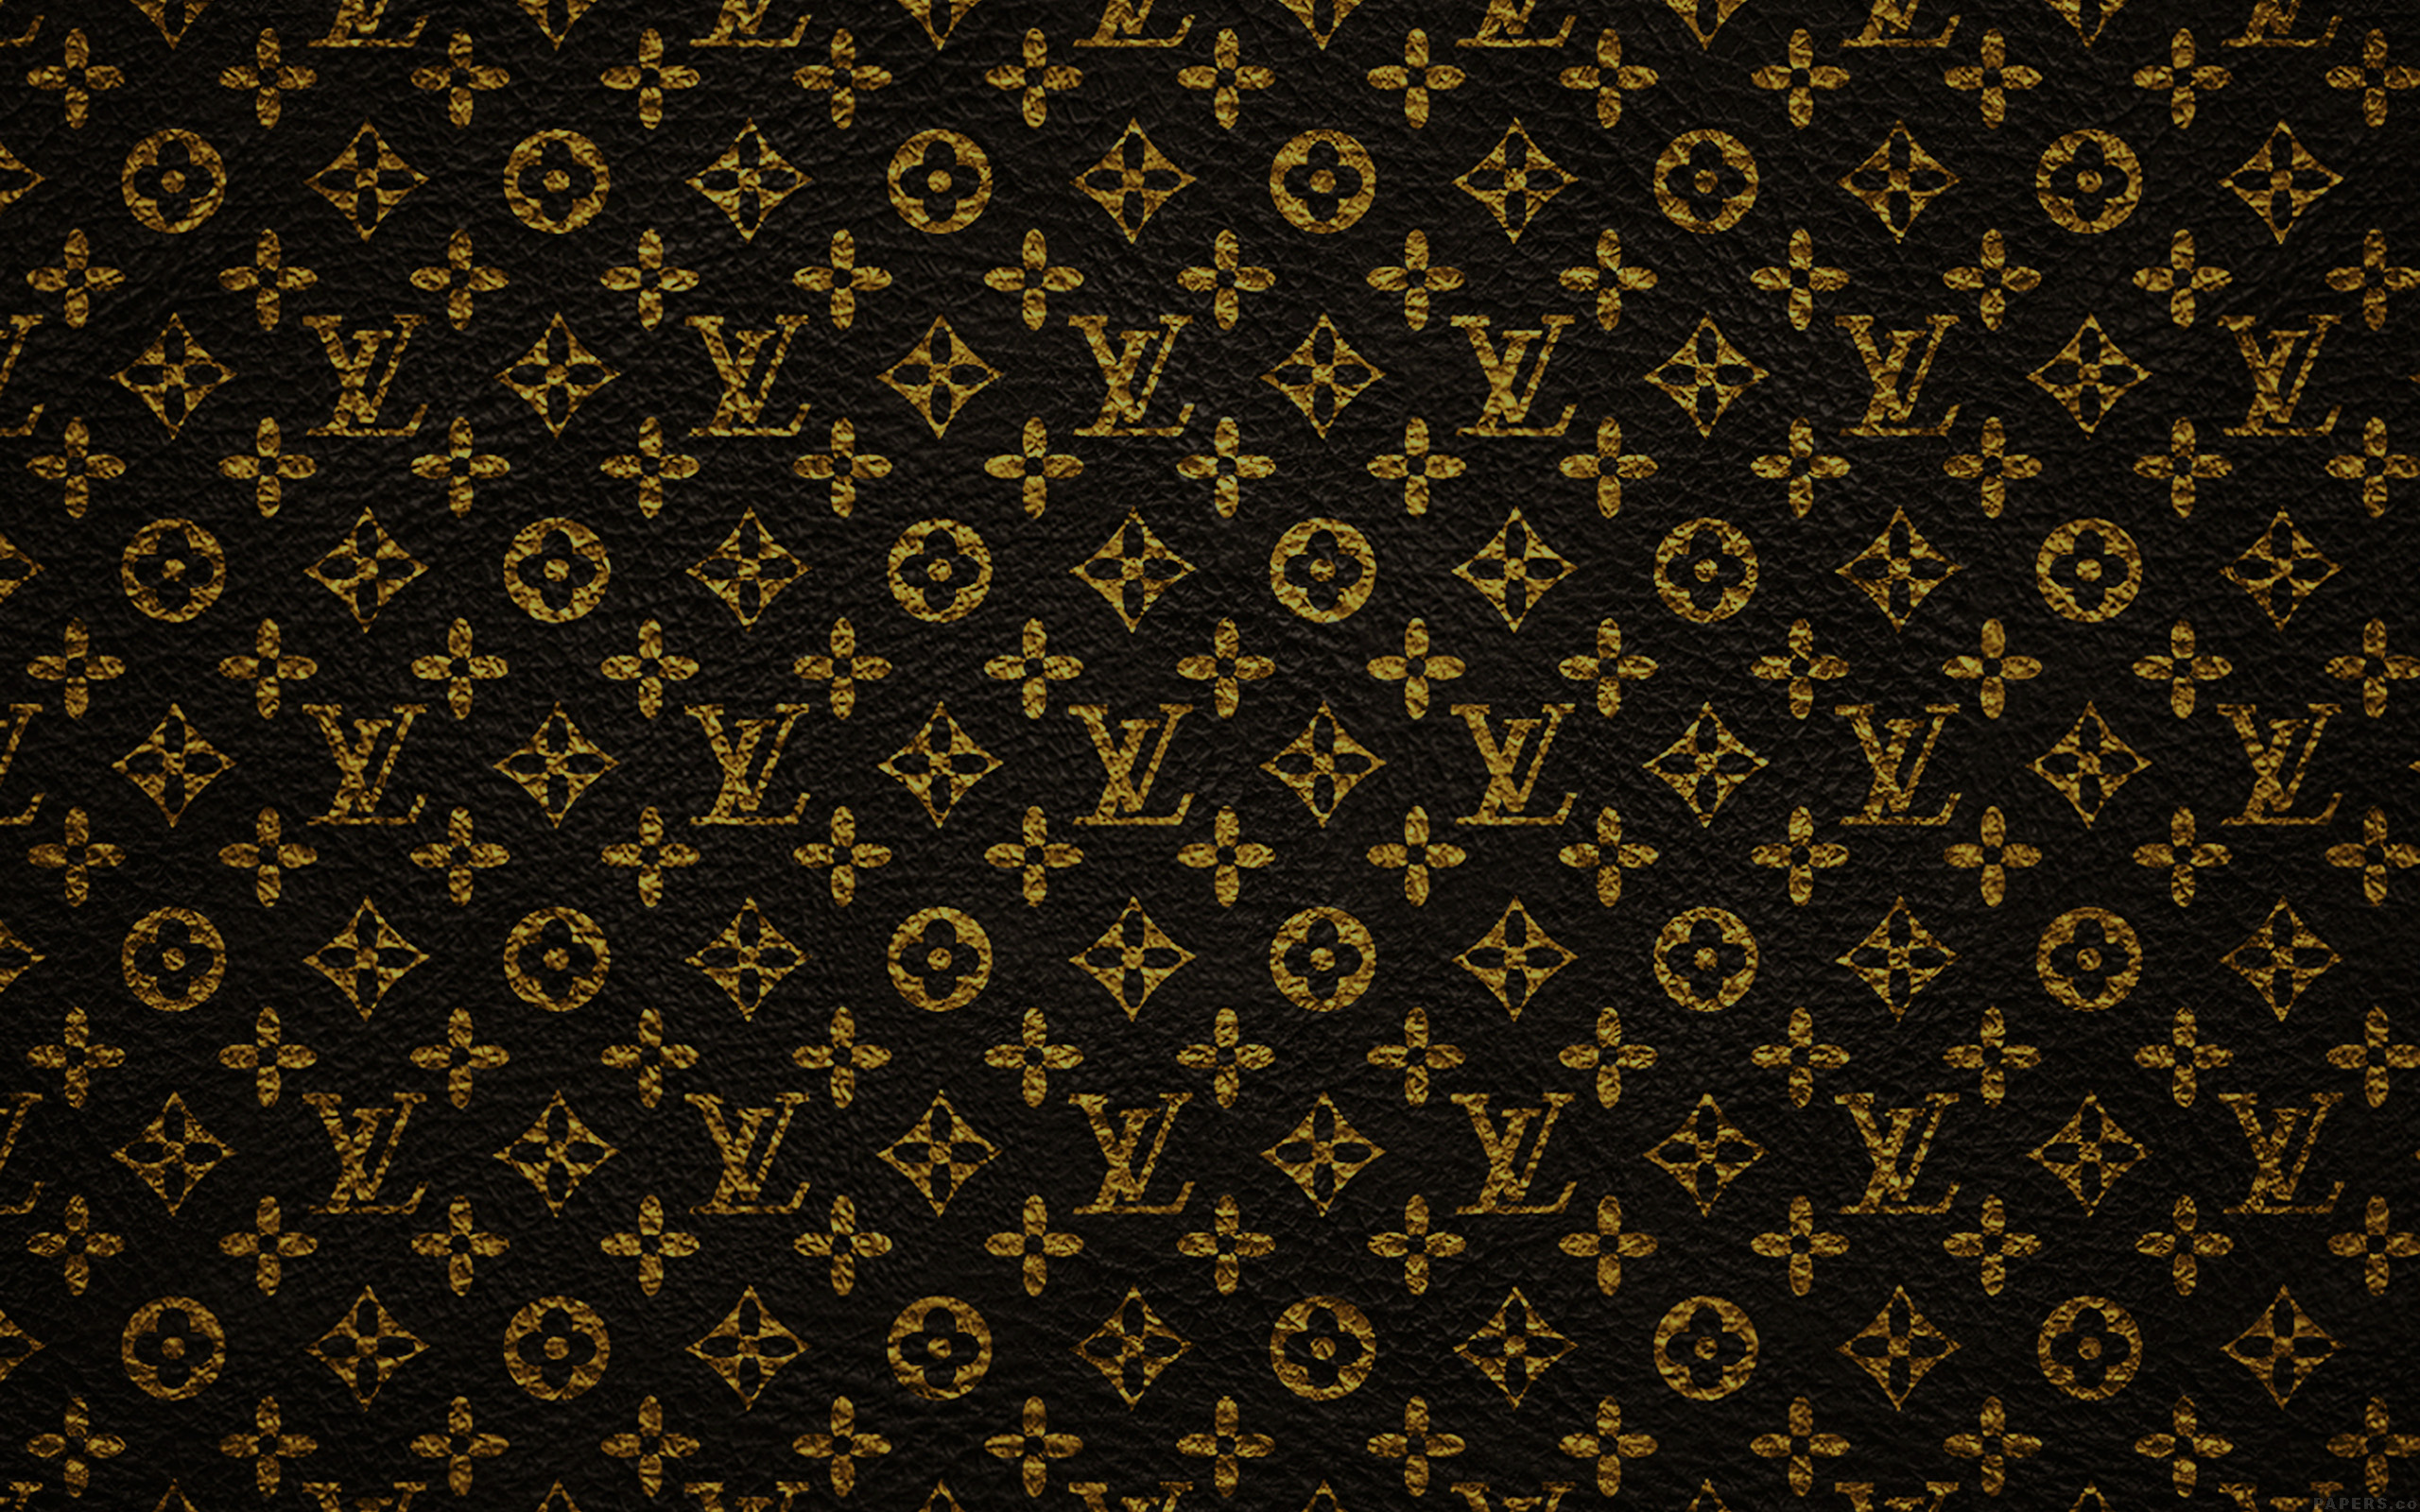 Lv Iphone Wallpaper Macbook Pro 13